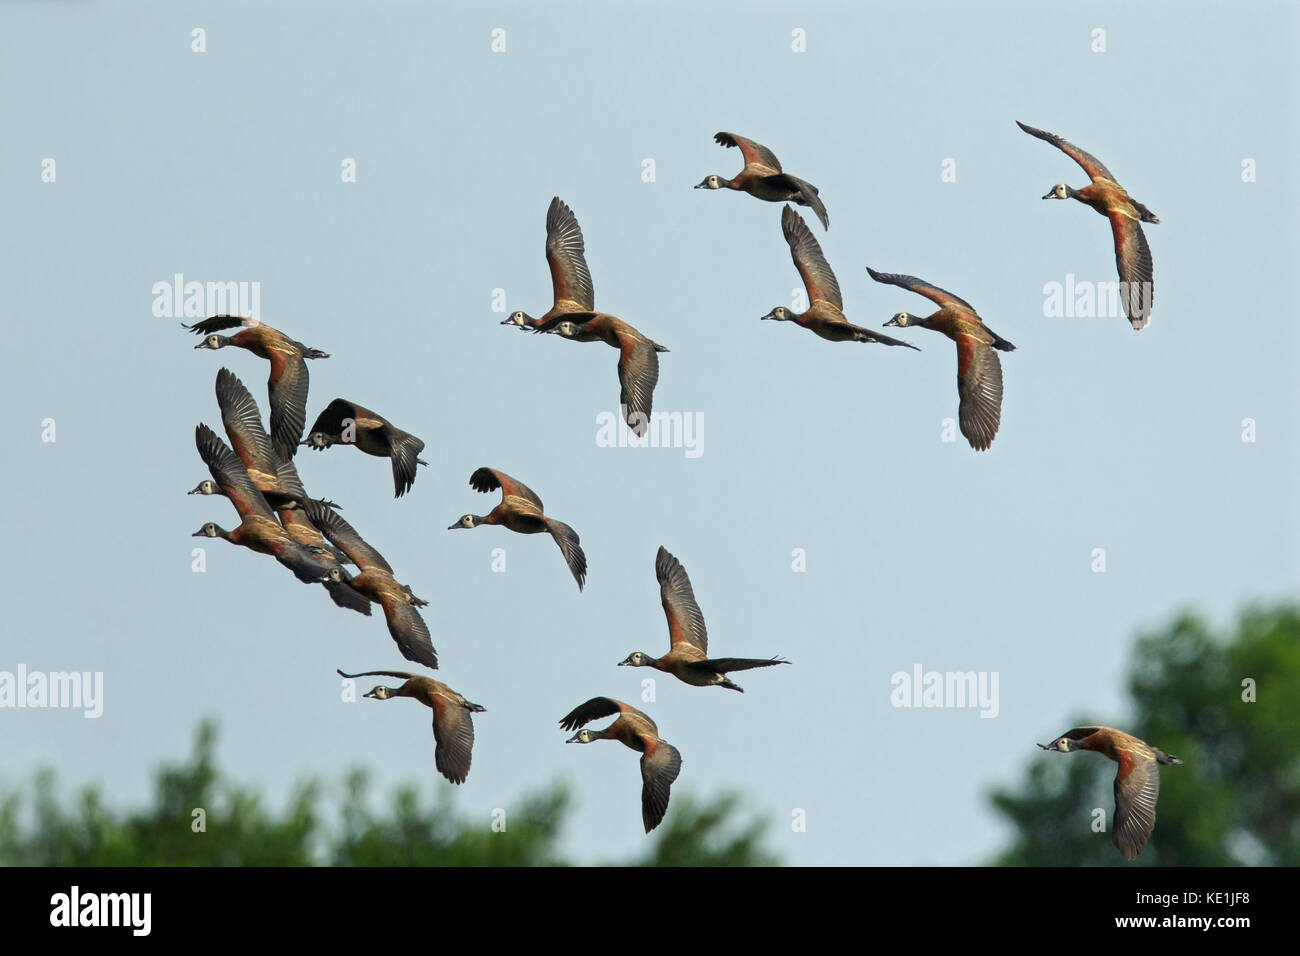 White-faced Whistling Duck (Dendrocygna viduata) flying in the grasslands of Guyana. - Stock Image